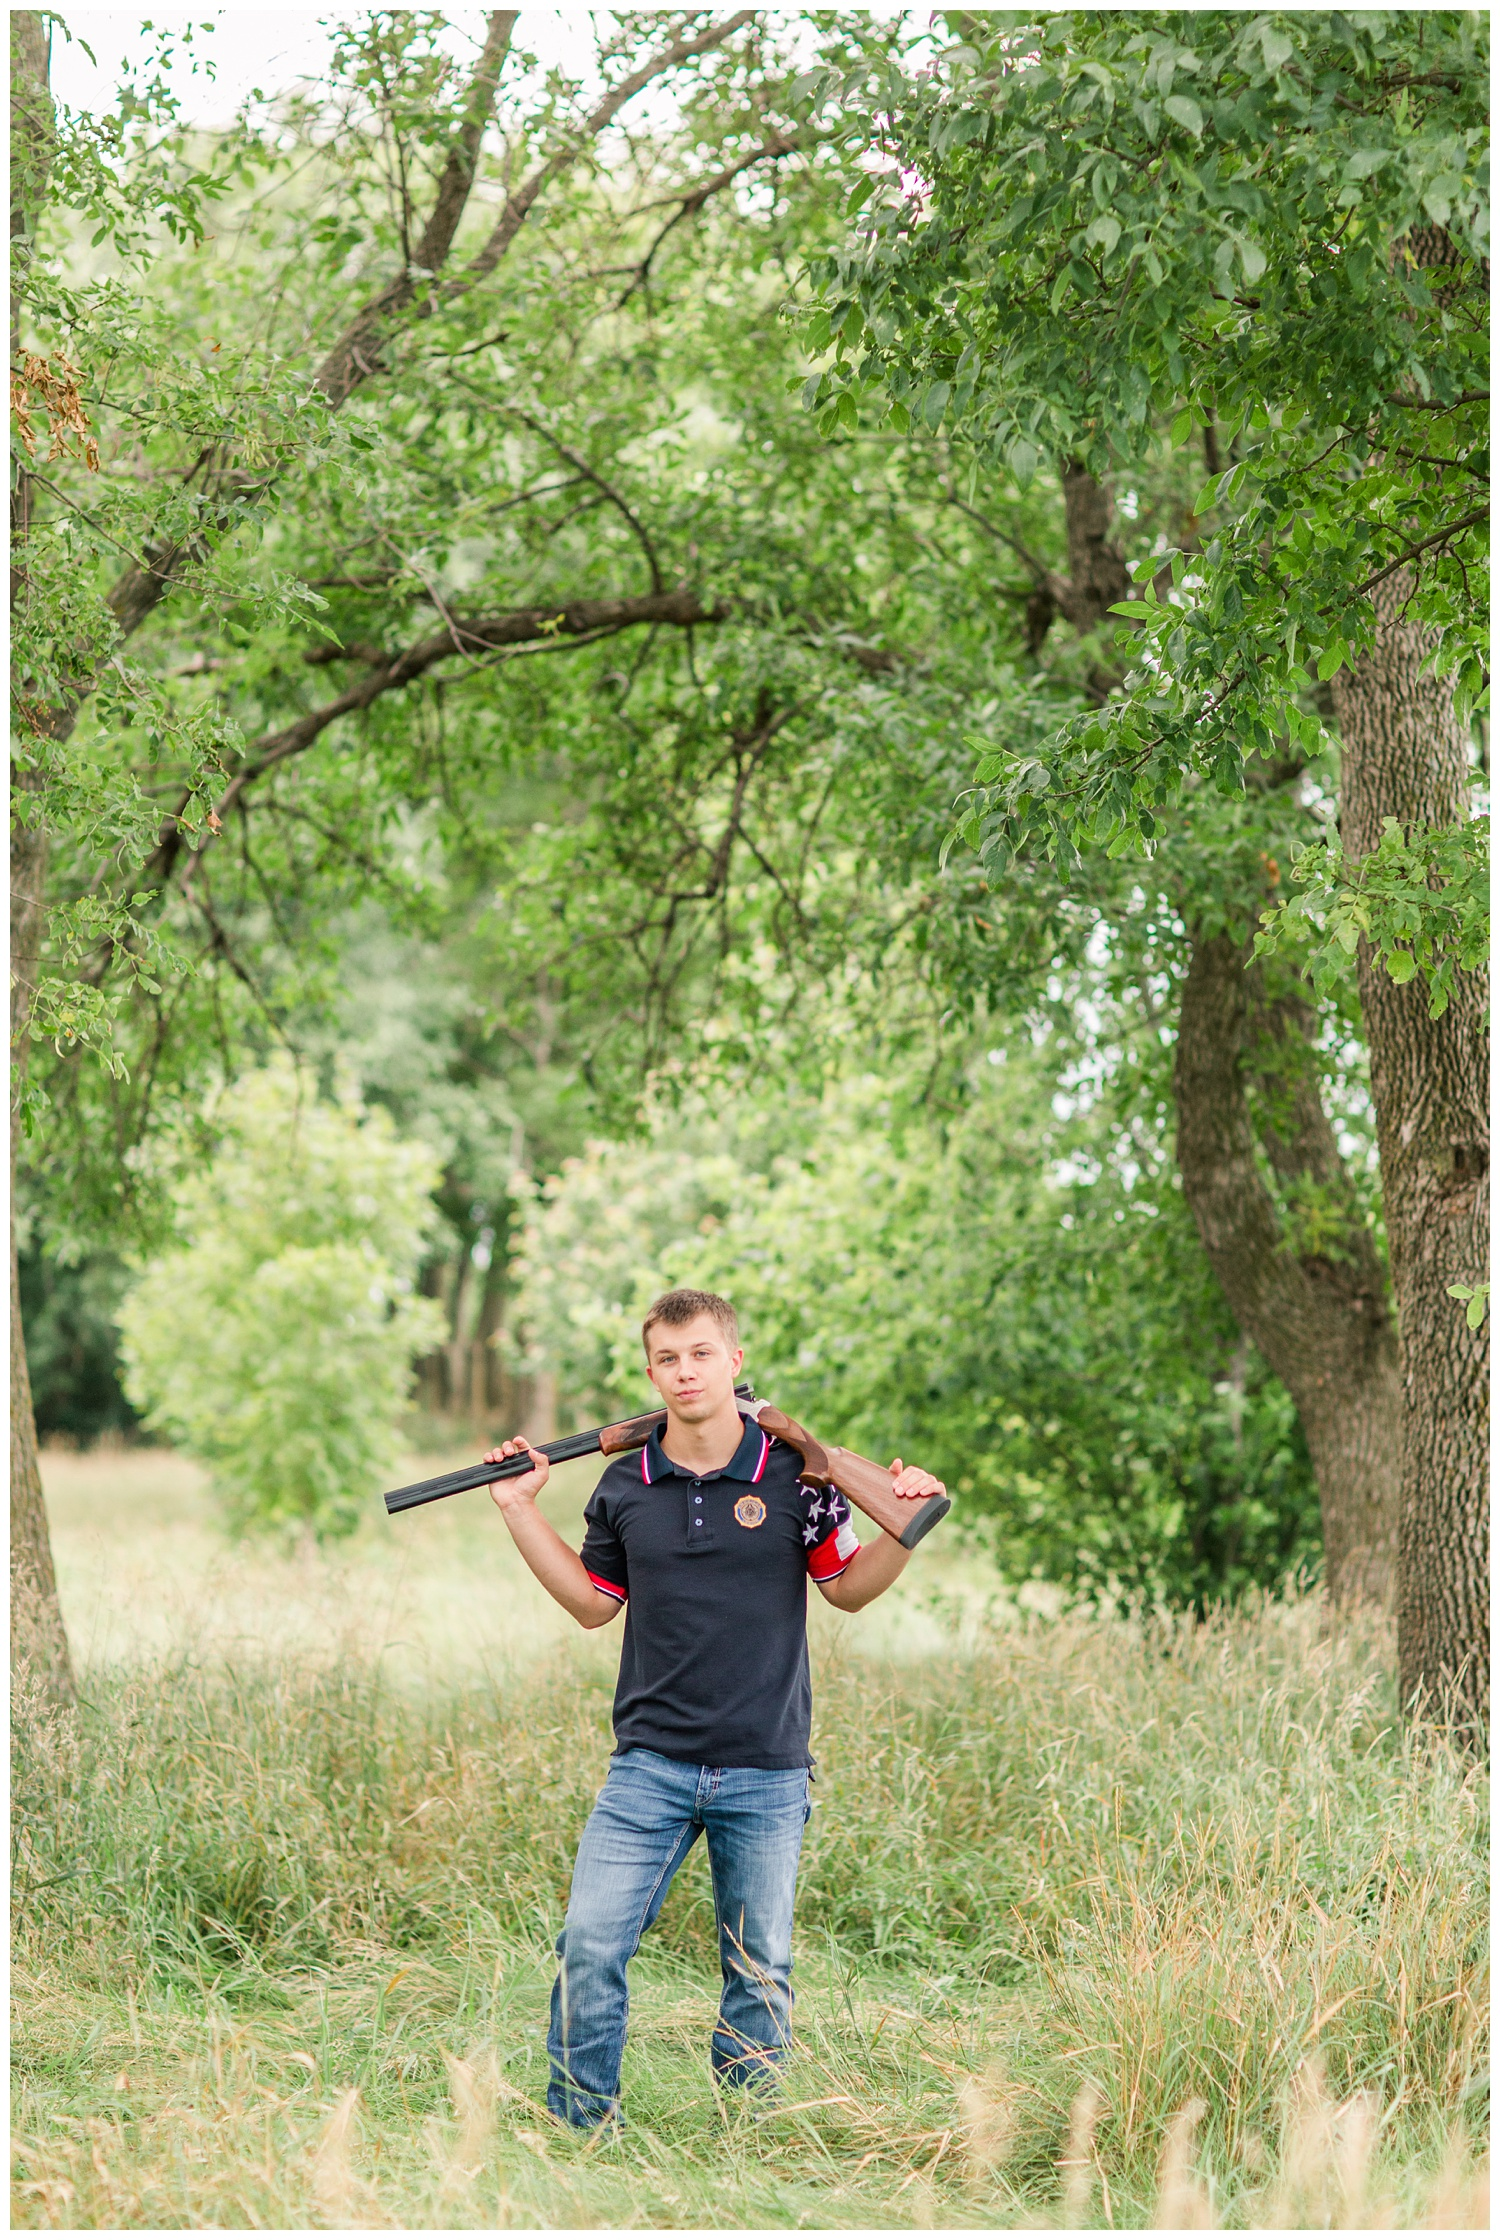 Senior boy wearing trapshooting gear carrying a shotgun around his neck in a grassy field surrounded by trees a on rural Iowa farm   CB Studio